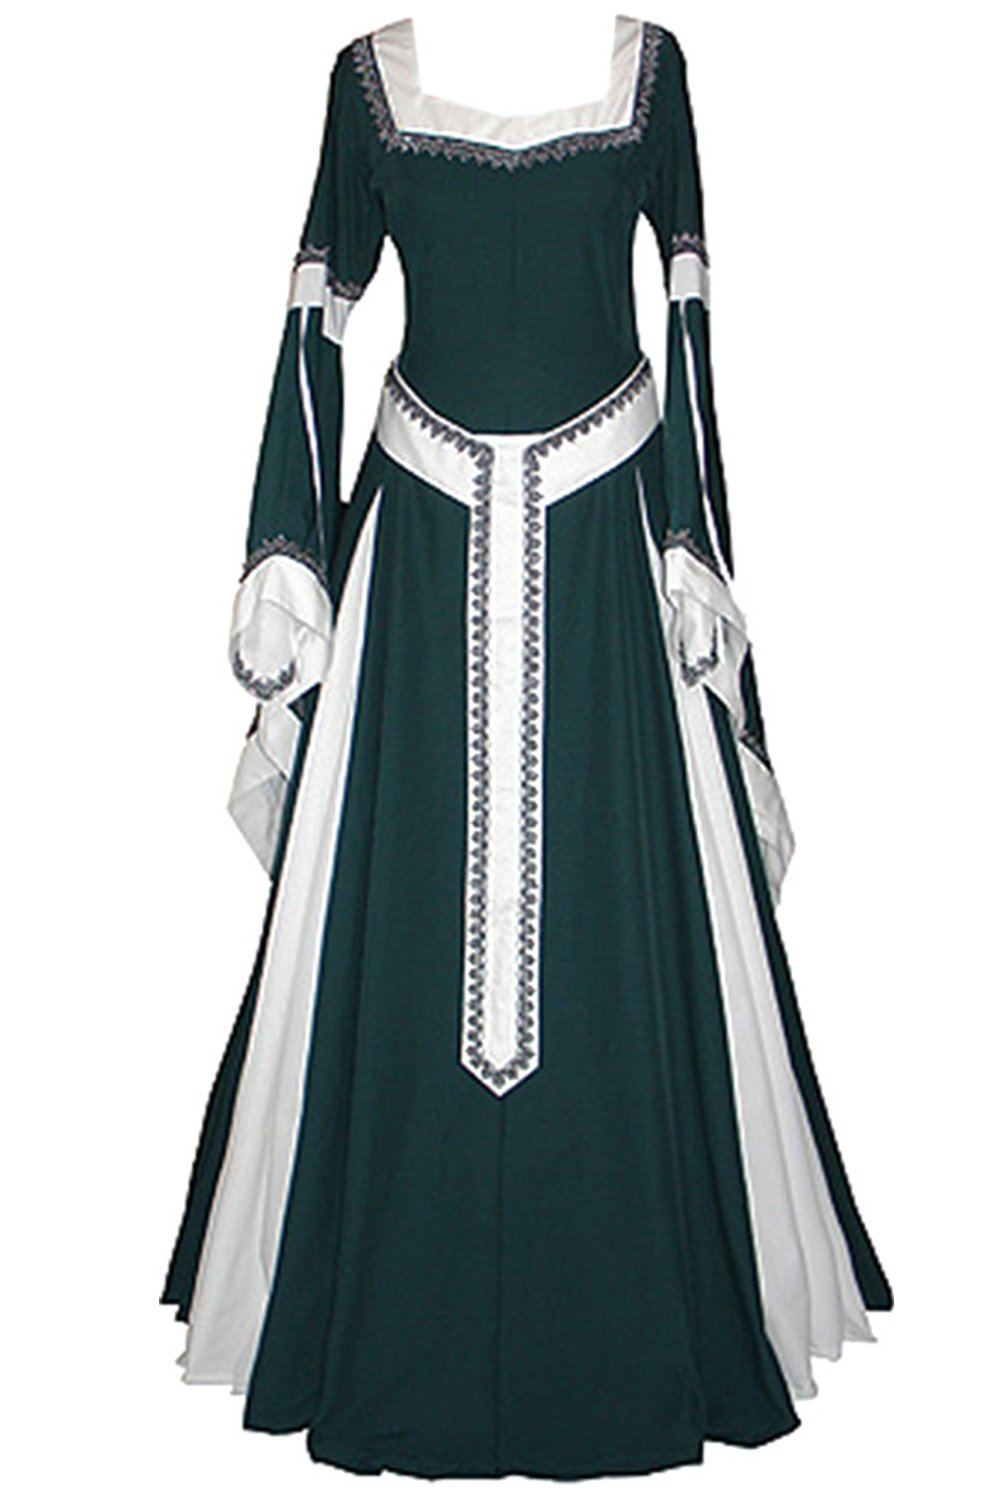 Amazon.com: Boomtrader Medieval Long Sleeved Trumpet Gothic Victorian Fancy Party Dress: Clothing